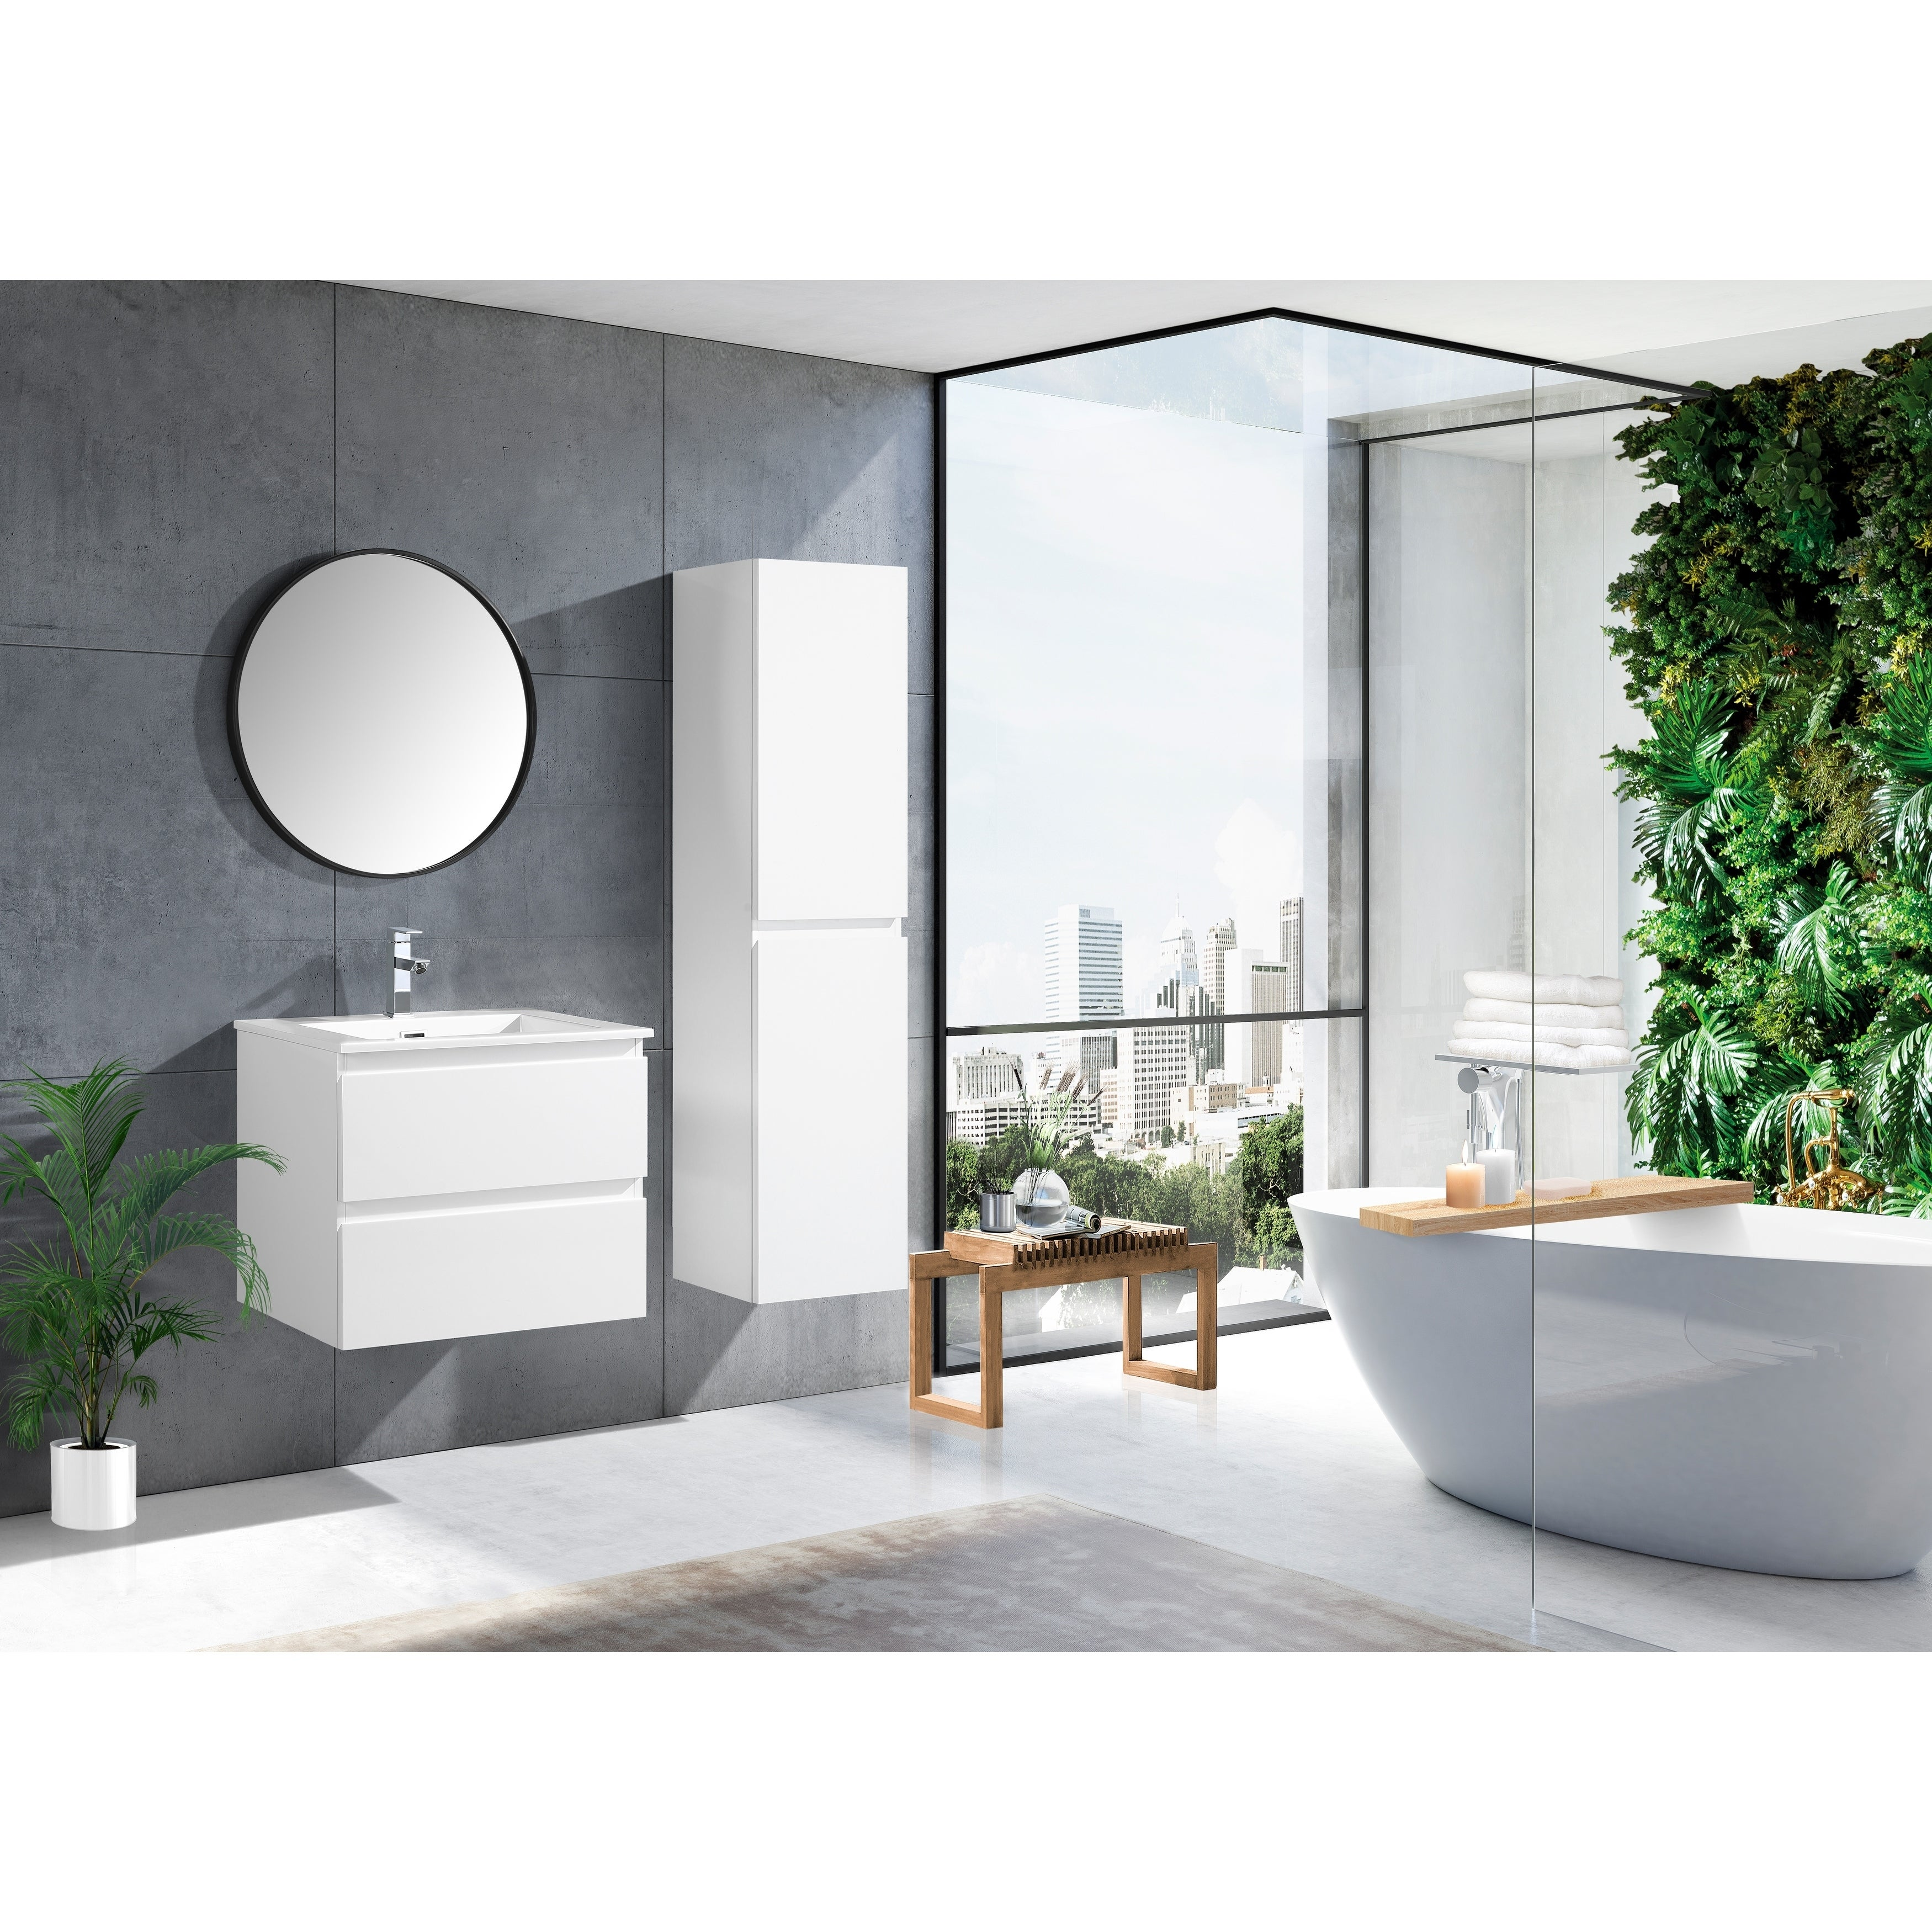 The Frost Collection 24 Inch Floating Modern Bathroom Vanity Overstock 20979053